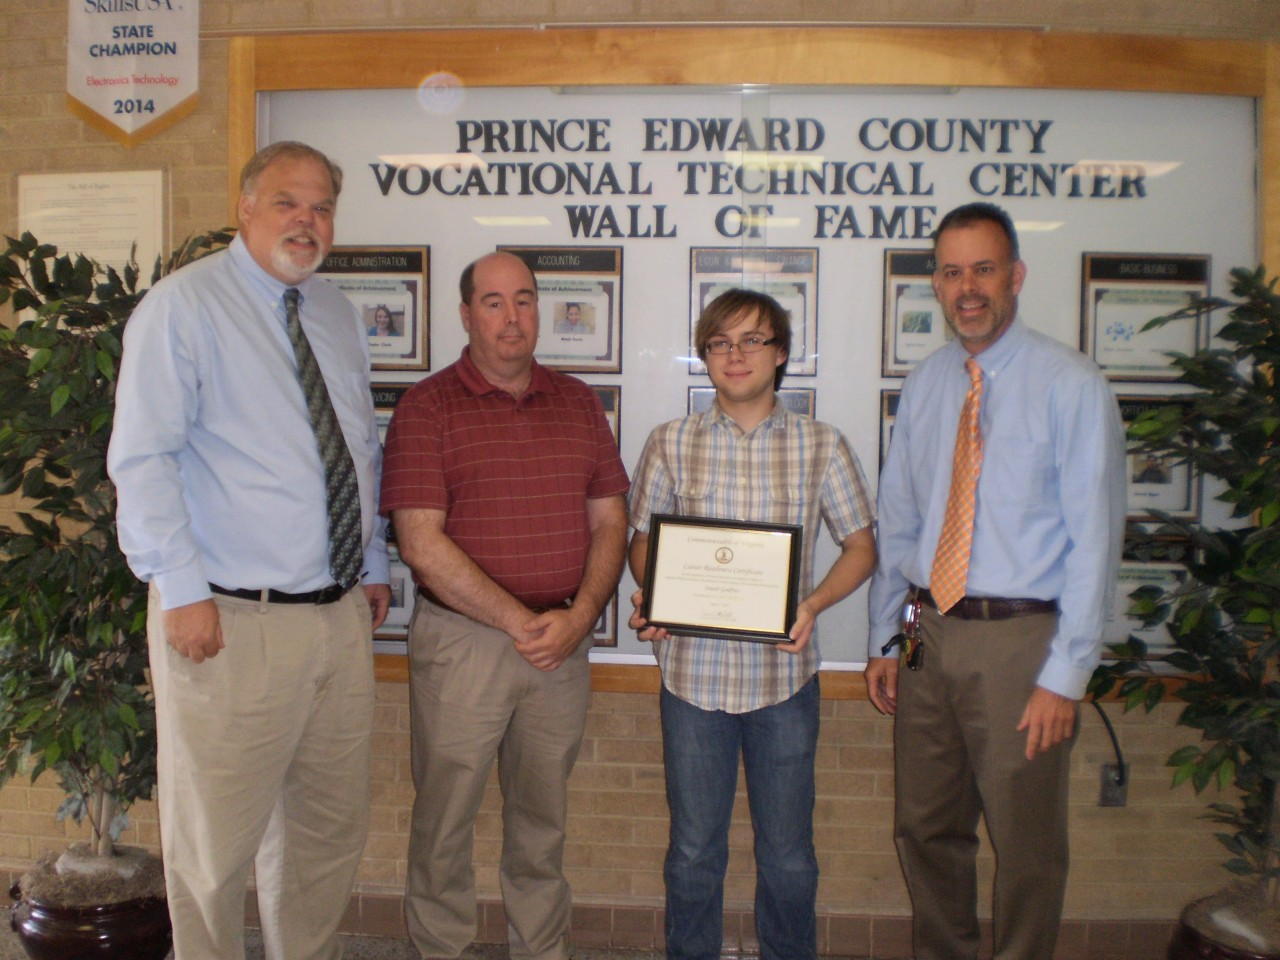 SVCC Awards its 20,000th Career Readiness Certificate